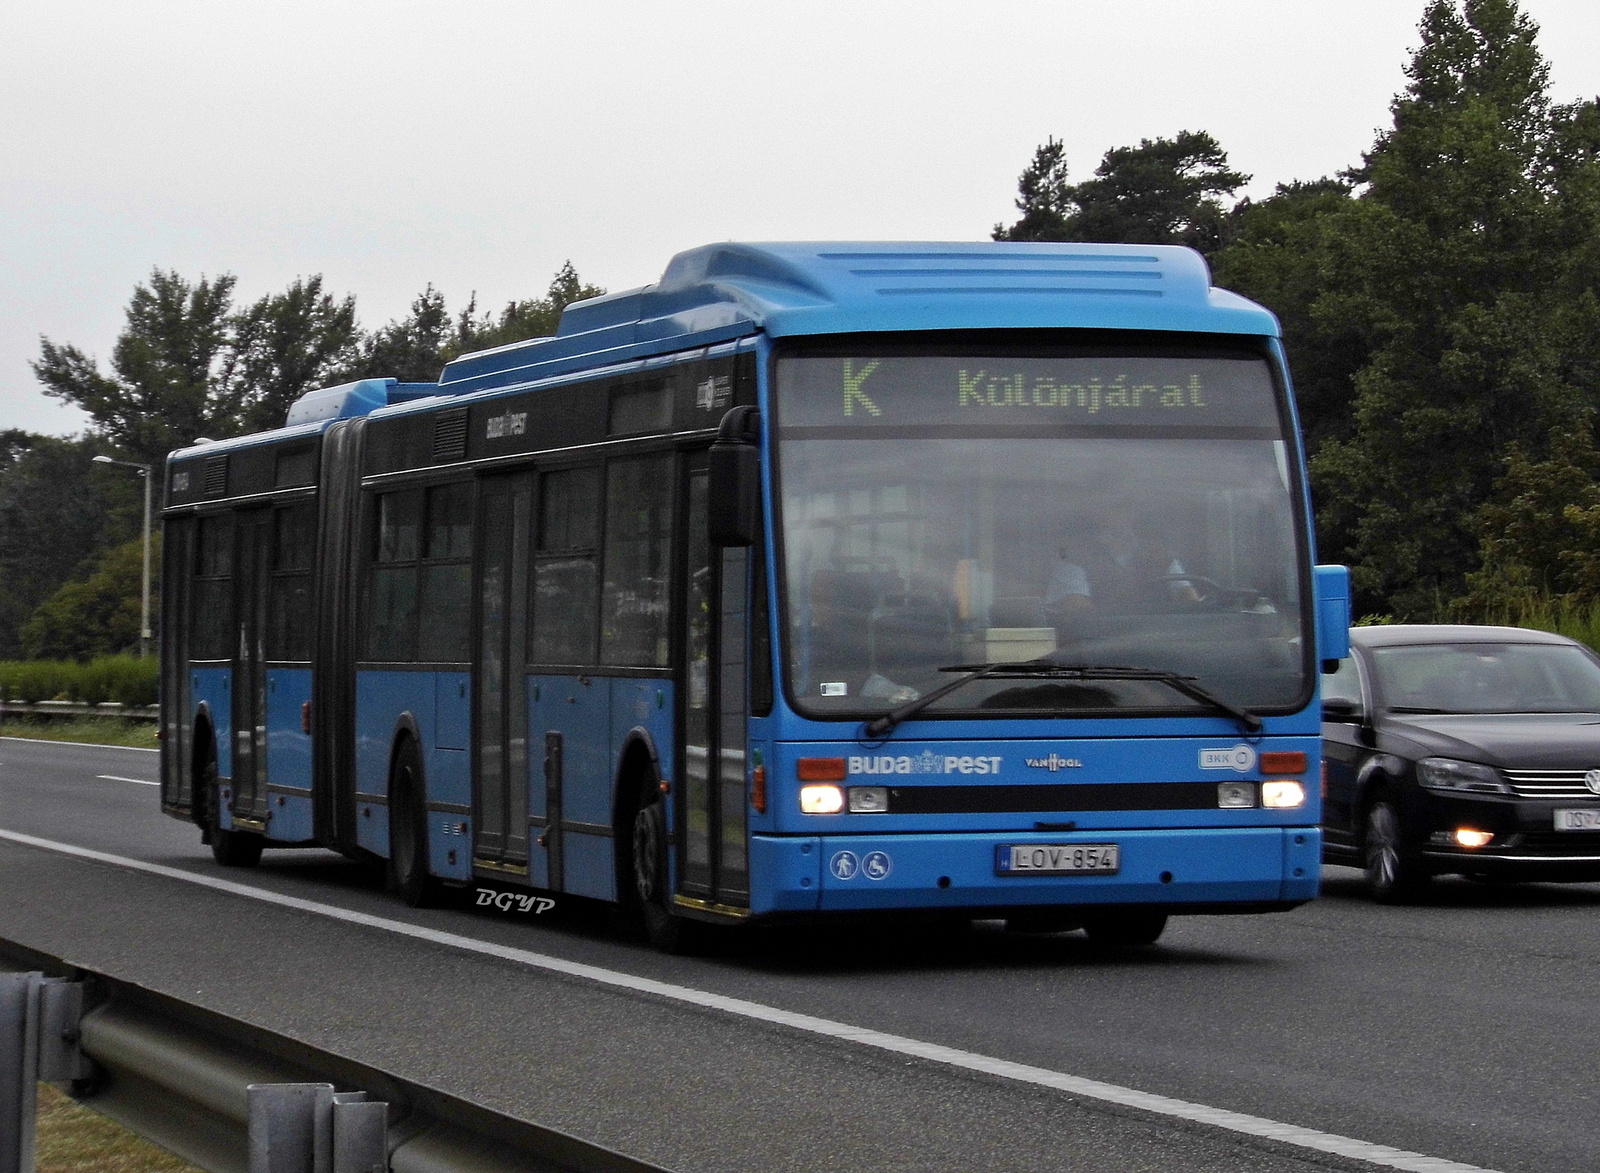 Van hool ag300 photo - 3